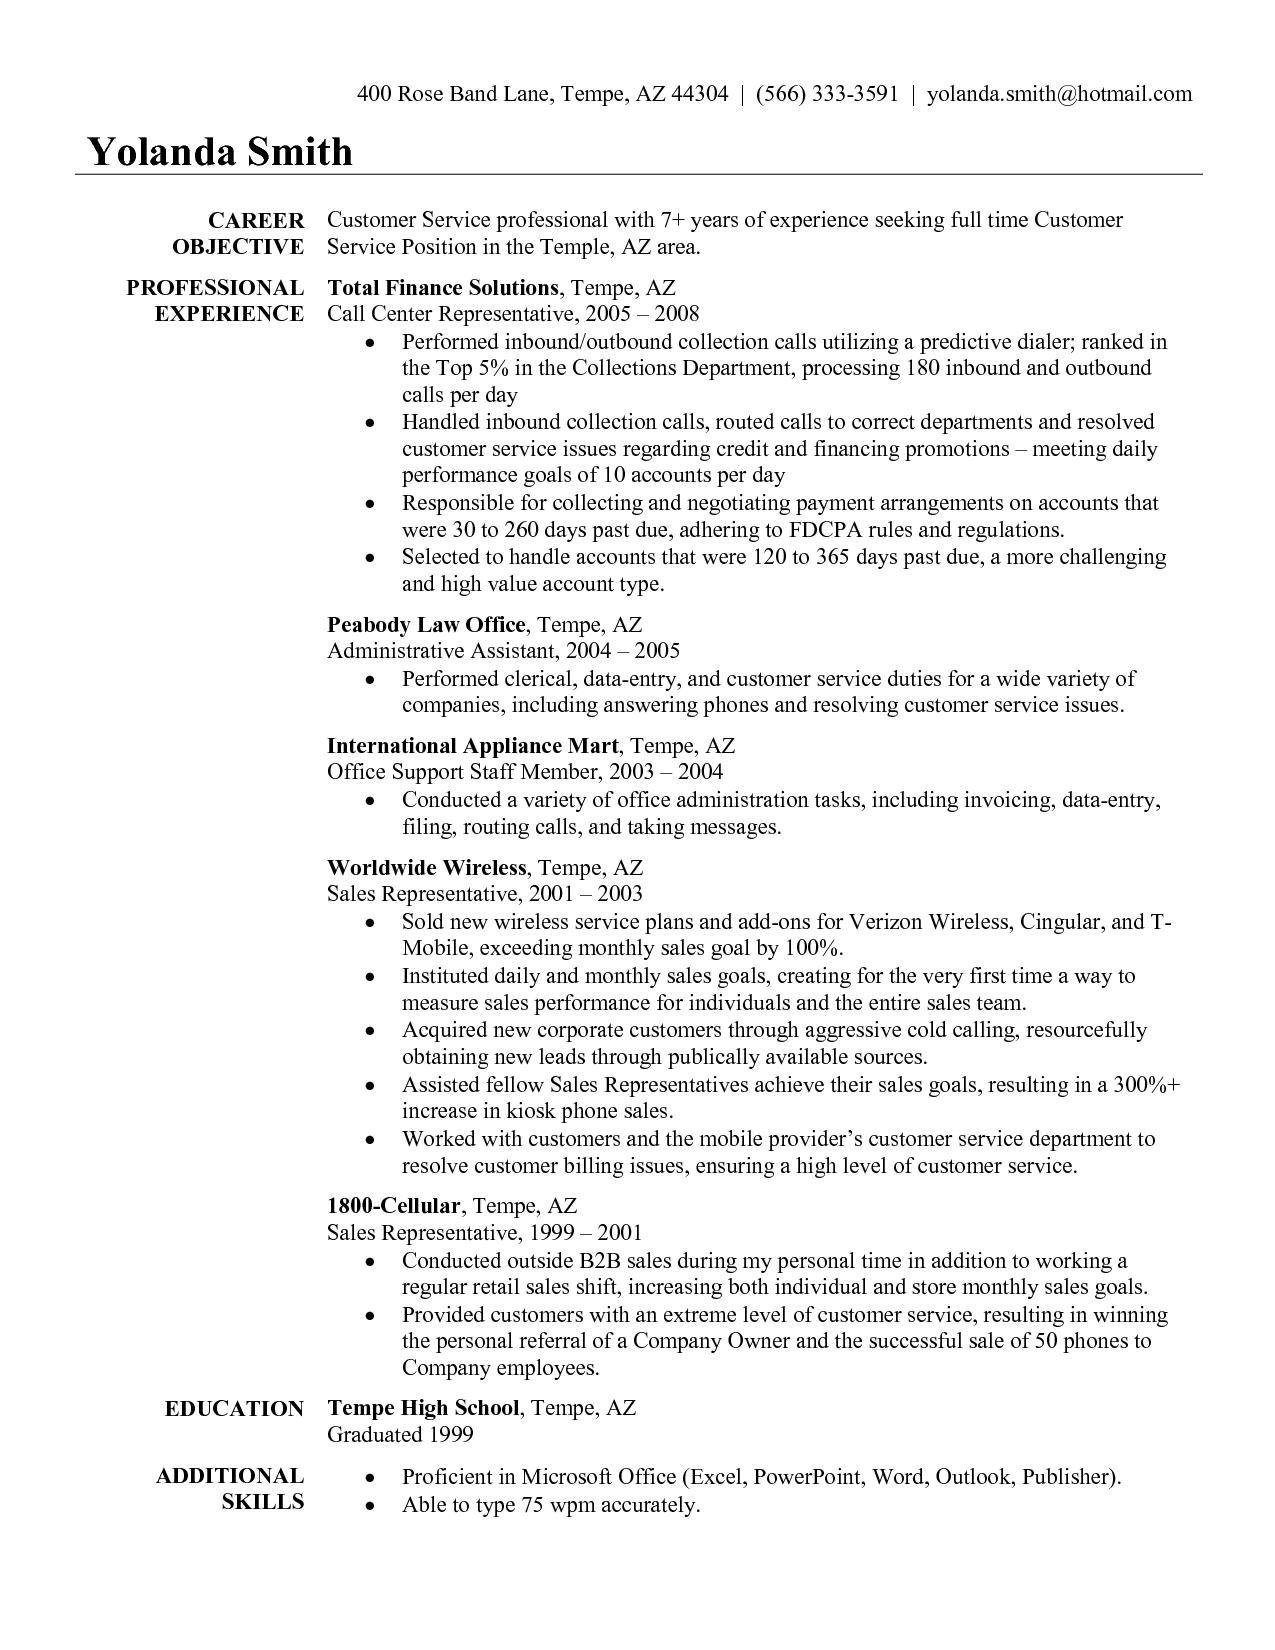 Resume Objectives For Customer Service Traffic Customer Resume Examplescustomer Service Resume Examples